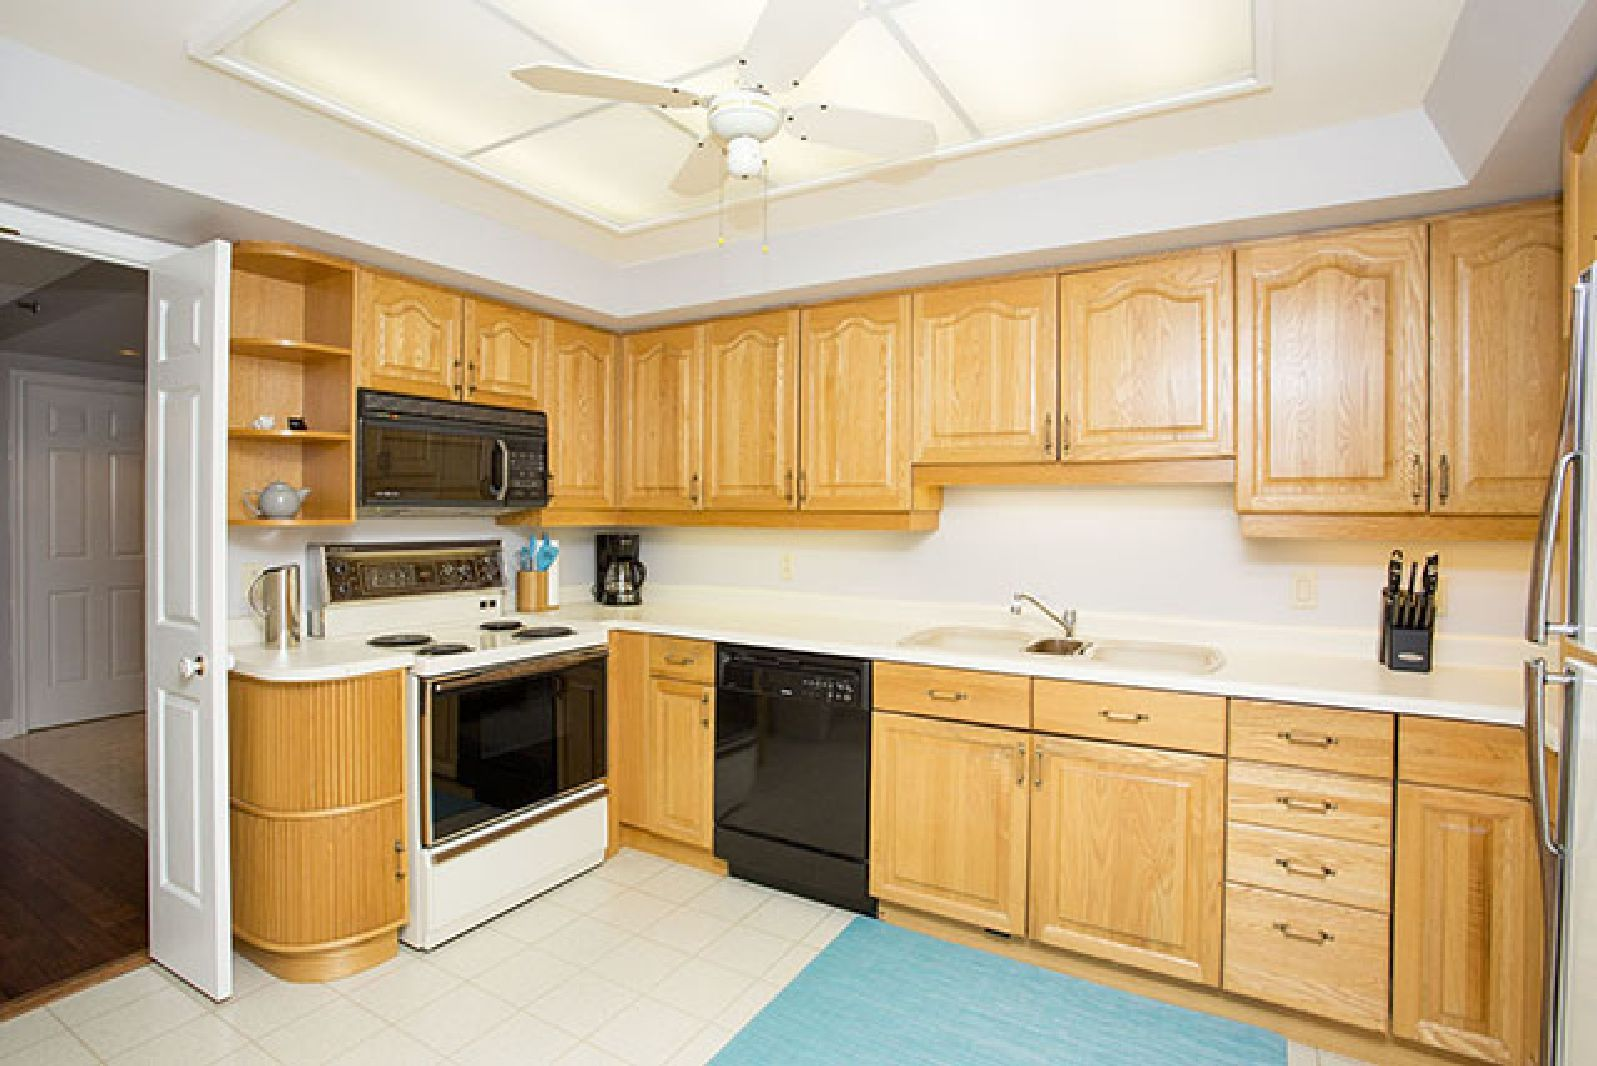 Enjoy a perfectly relaxing stay when you book this exquisite two bedroom suite in the quiet Summer Gardens. #Halifax #CorporateHousing #Accommodation #LuxuryApartment